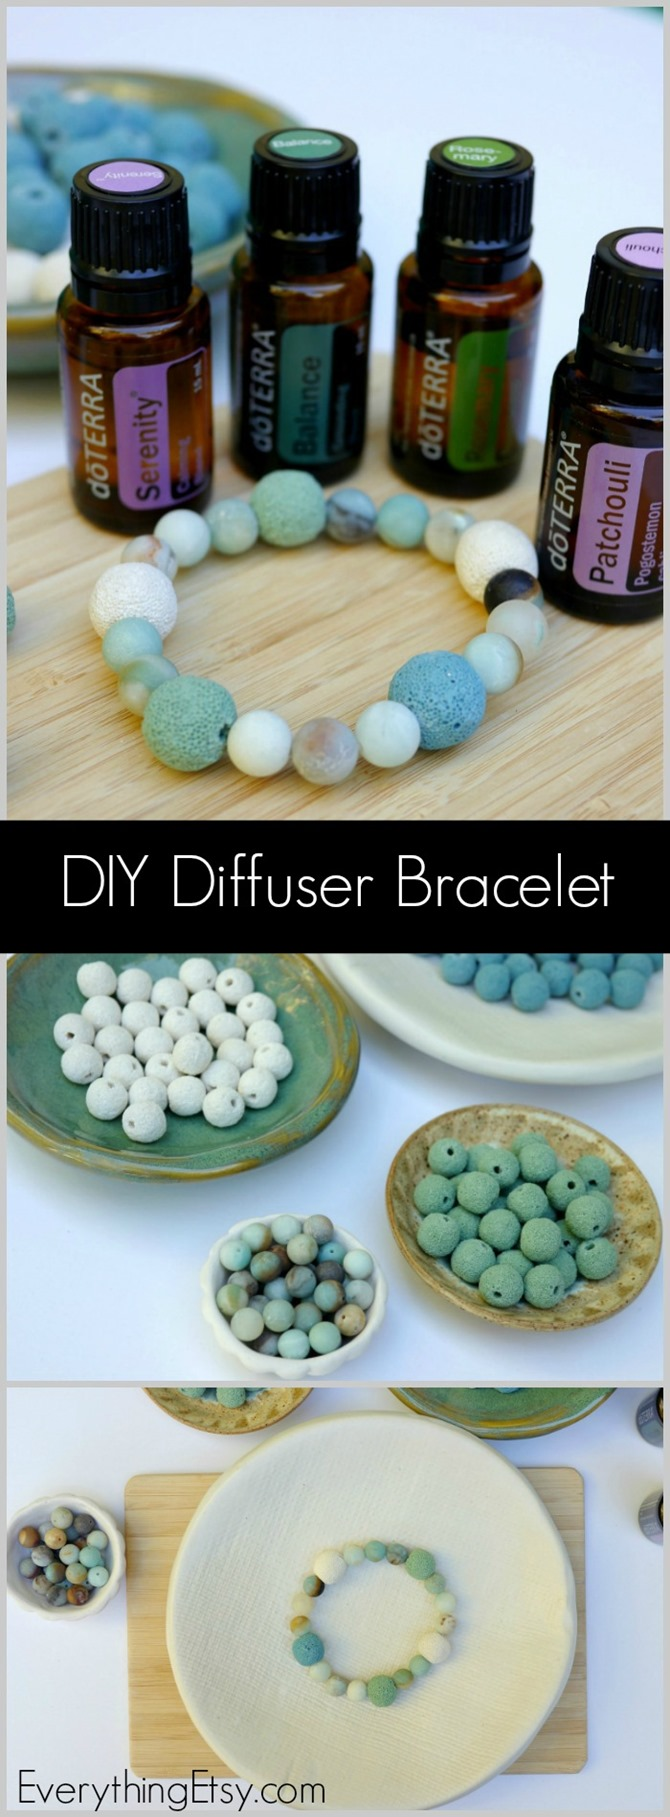 DIY Diffuser Bracelet - doTERRA Essential Oils - EverythingEtsy.com